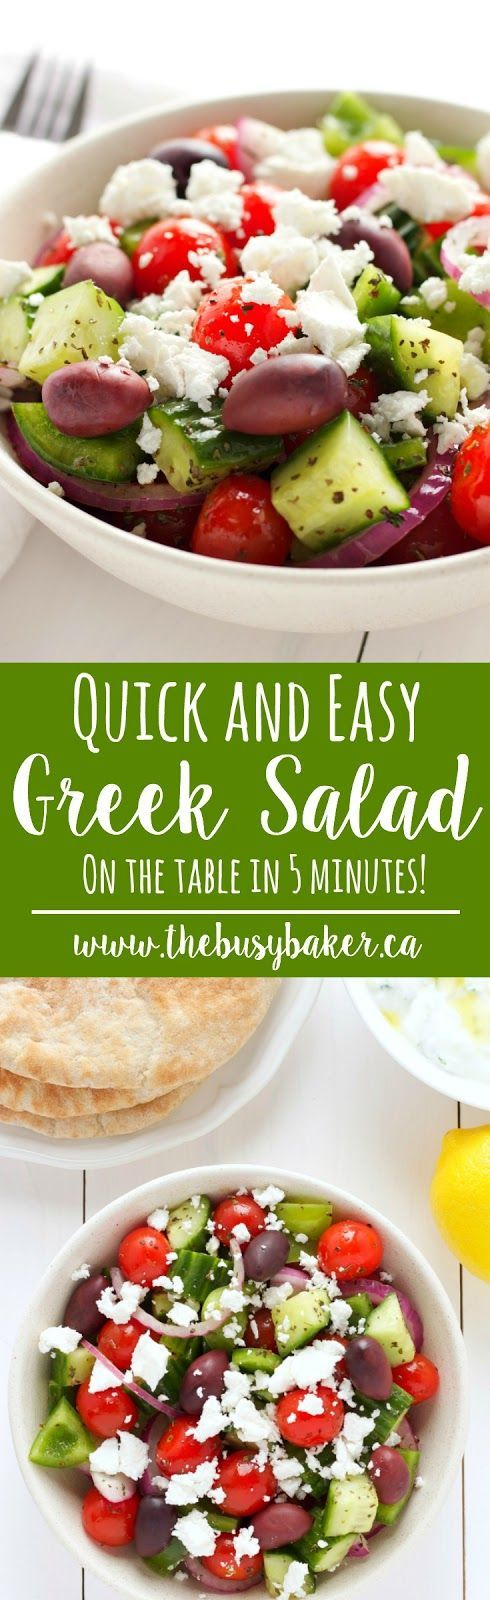 The perfect Easy Greek Salad for your 4th of July Barbecue! www.thebusybaker.ca